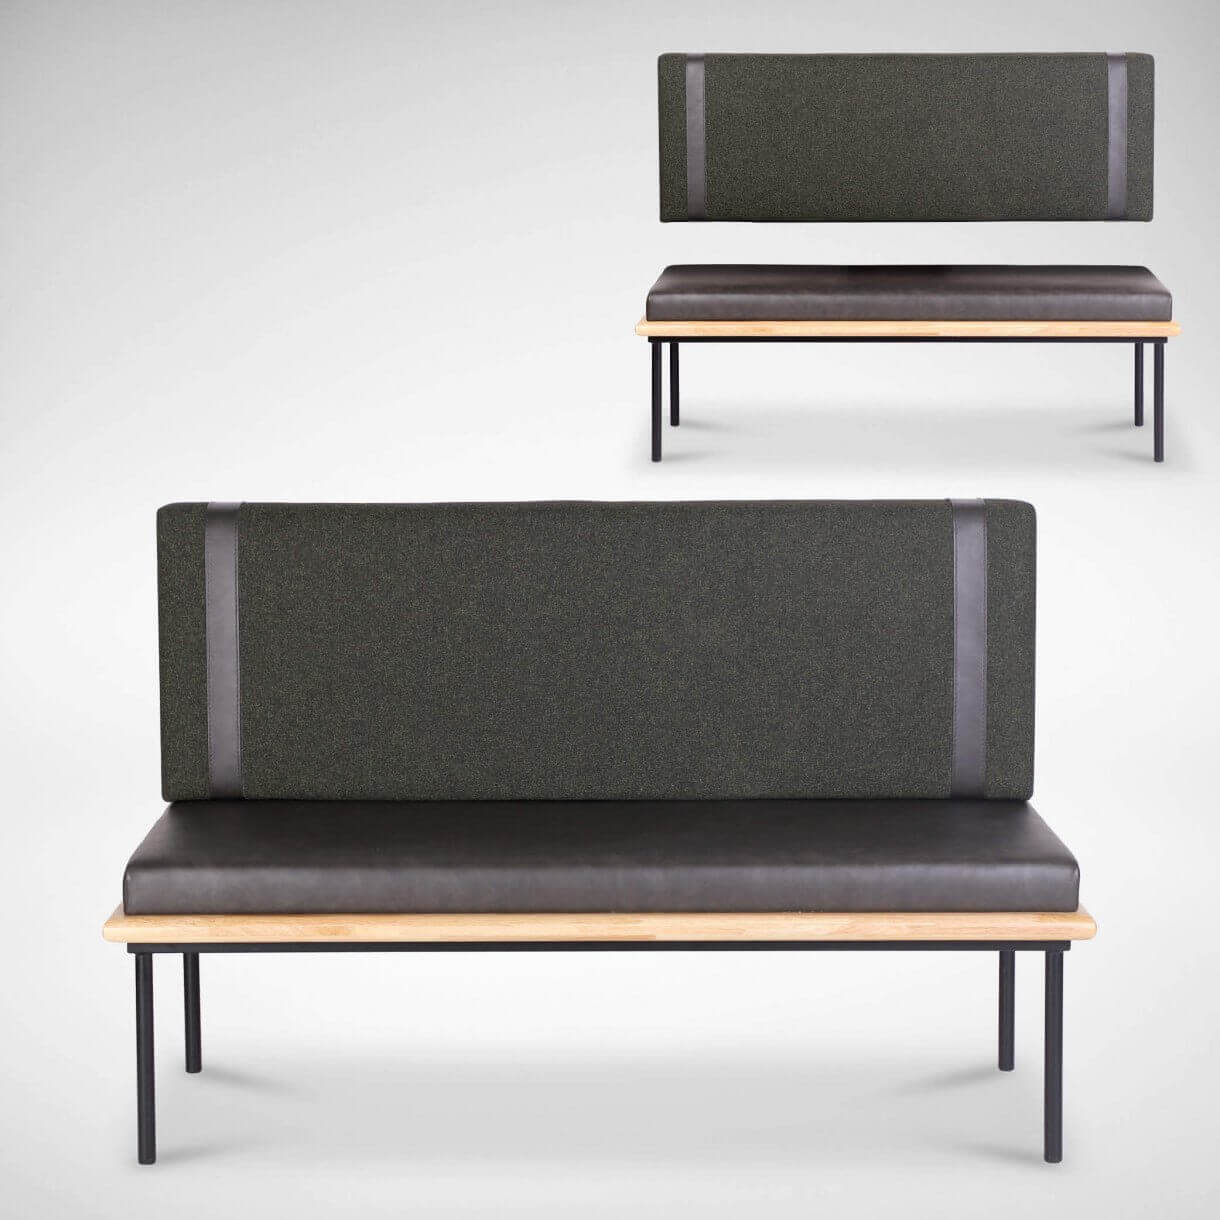 Consider Booth Furniture with Detachable Seats for Easy Cleaning - Comfort Furniture